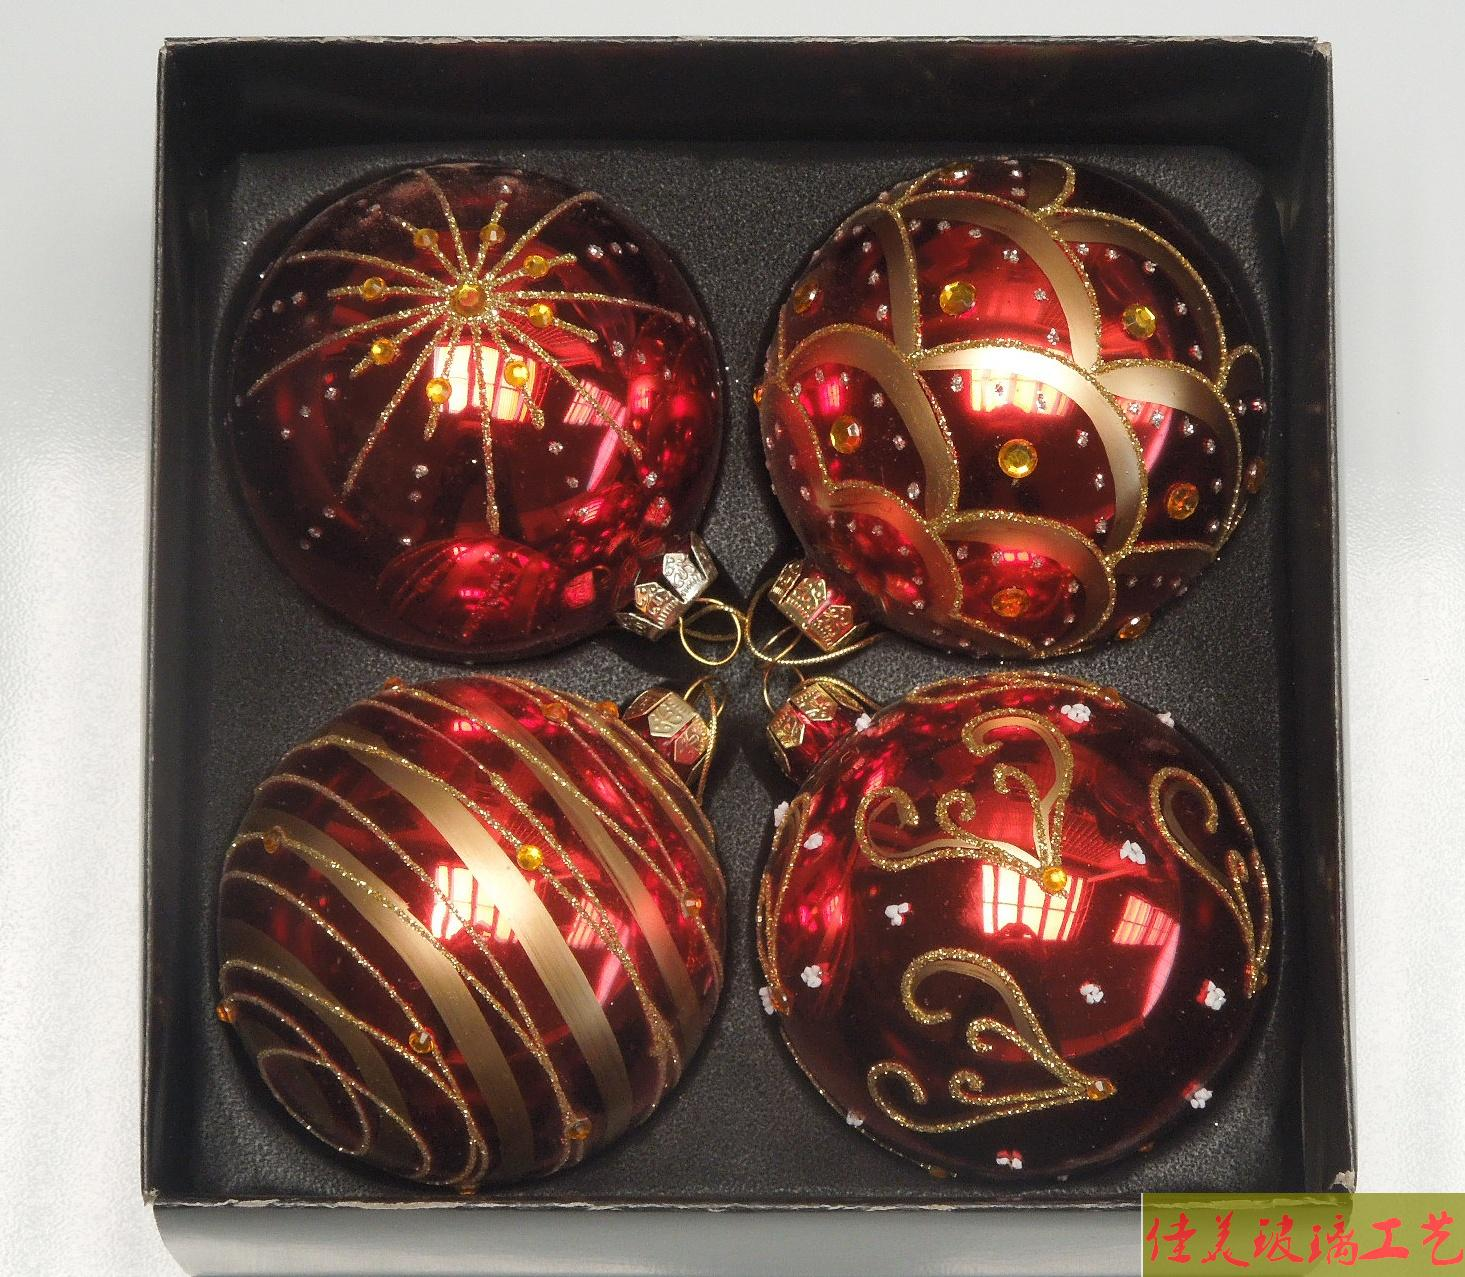 Red glass ball ornaments - Red Color Xmas Balls 8cm Diameter Ball Christmas Tree Decoration Christmas Supplies Gift 4pcs Pack